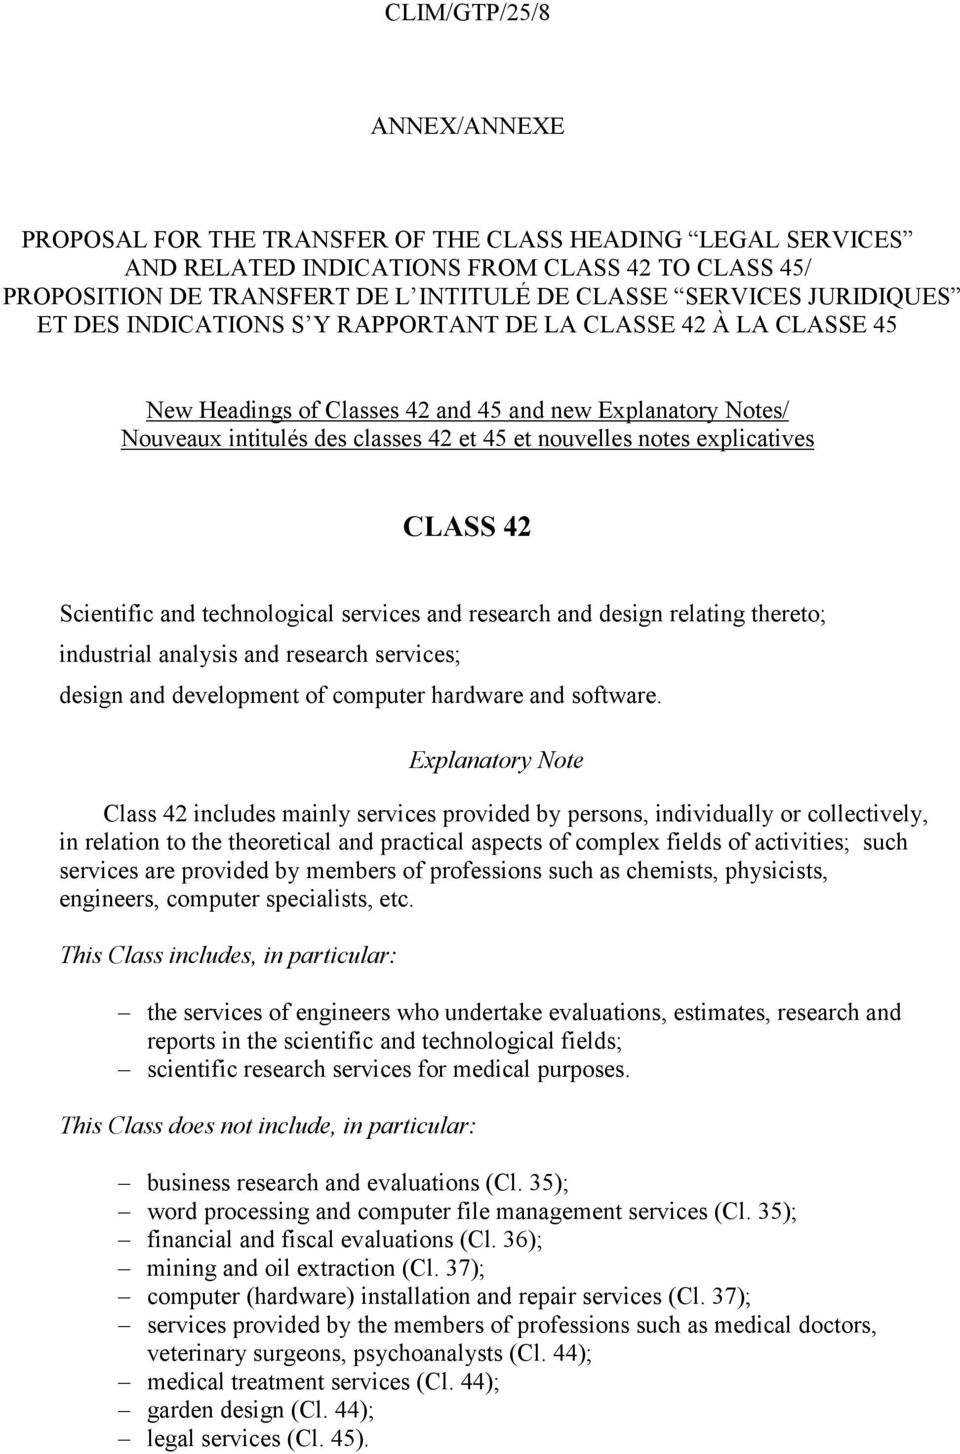 Scientific and technological services and research and design relating thereto; industrial analysis and research services; design and development of computer hardware and software.